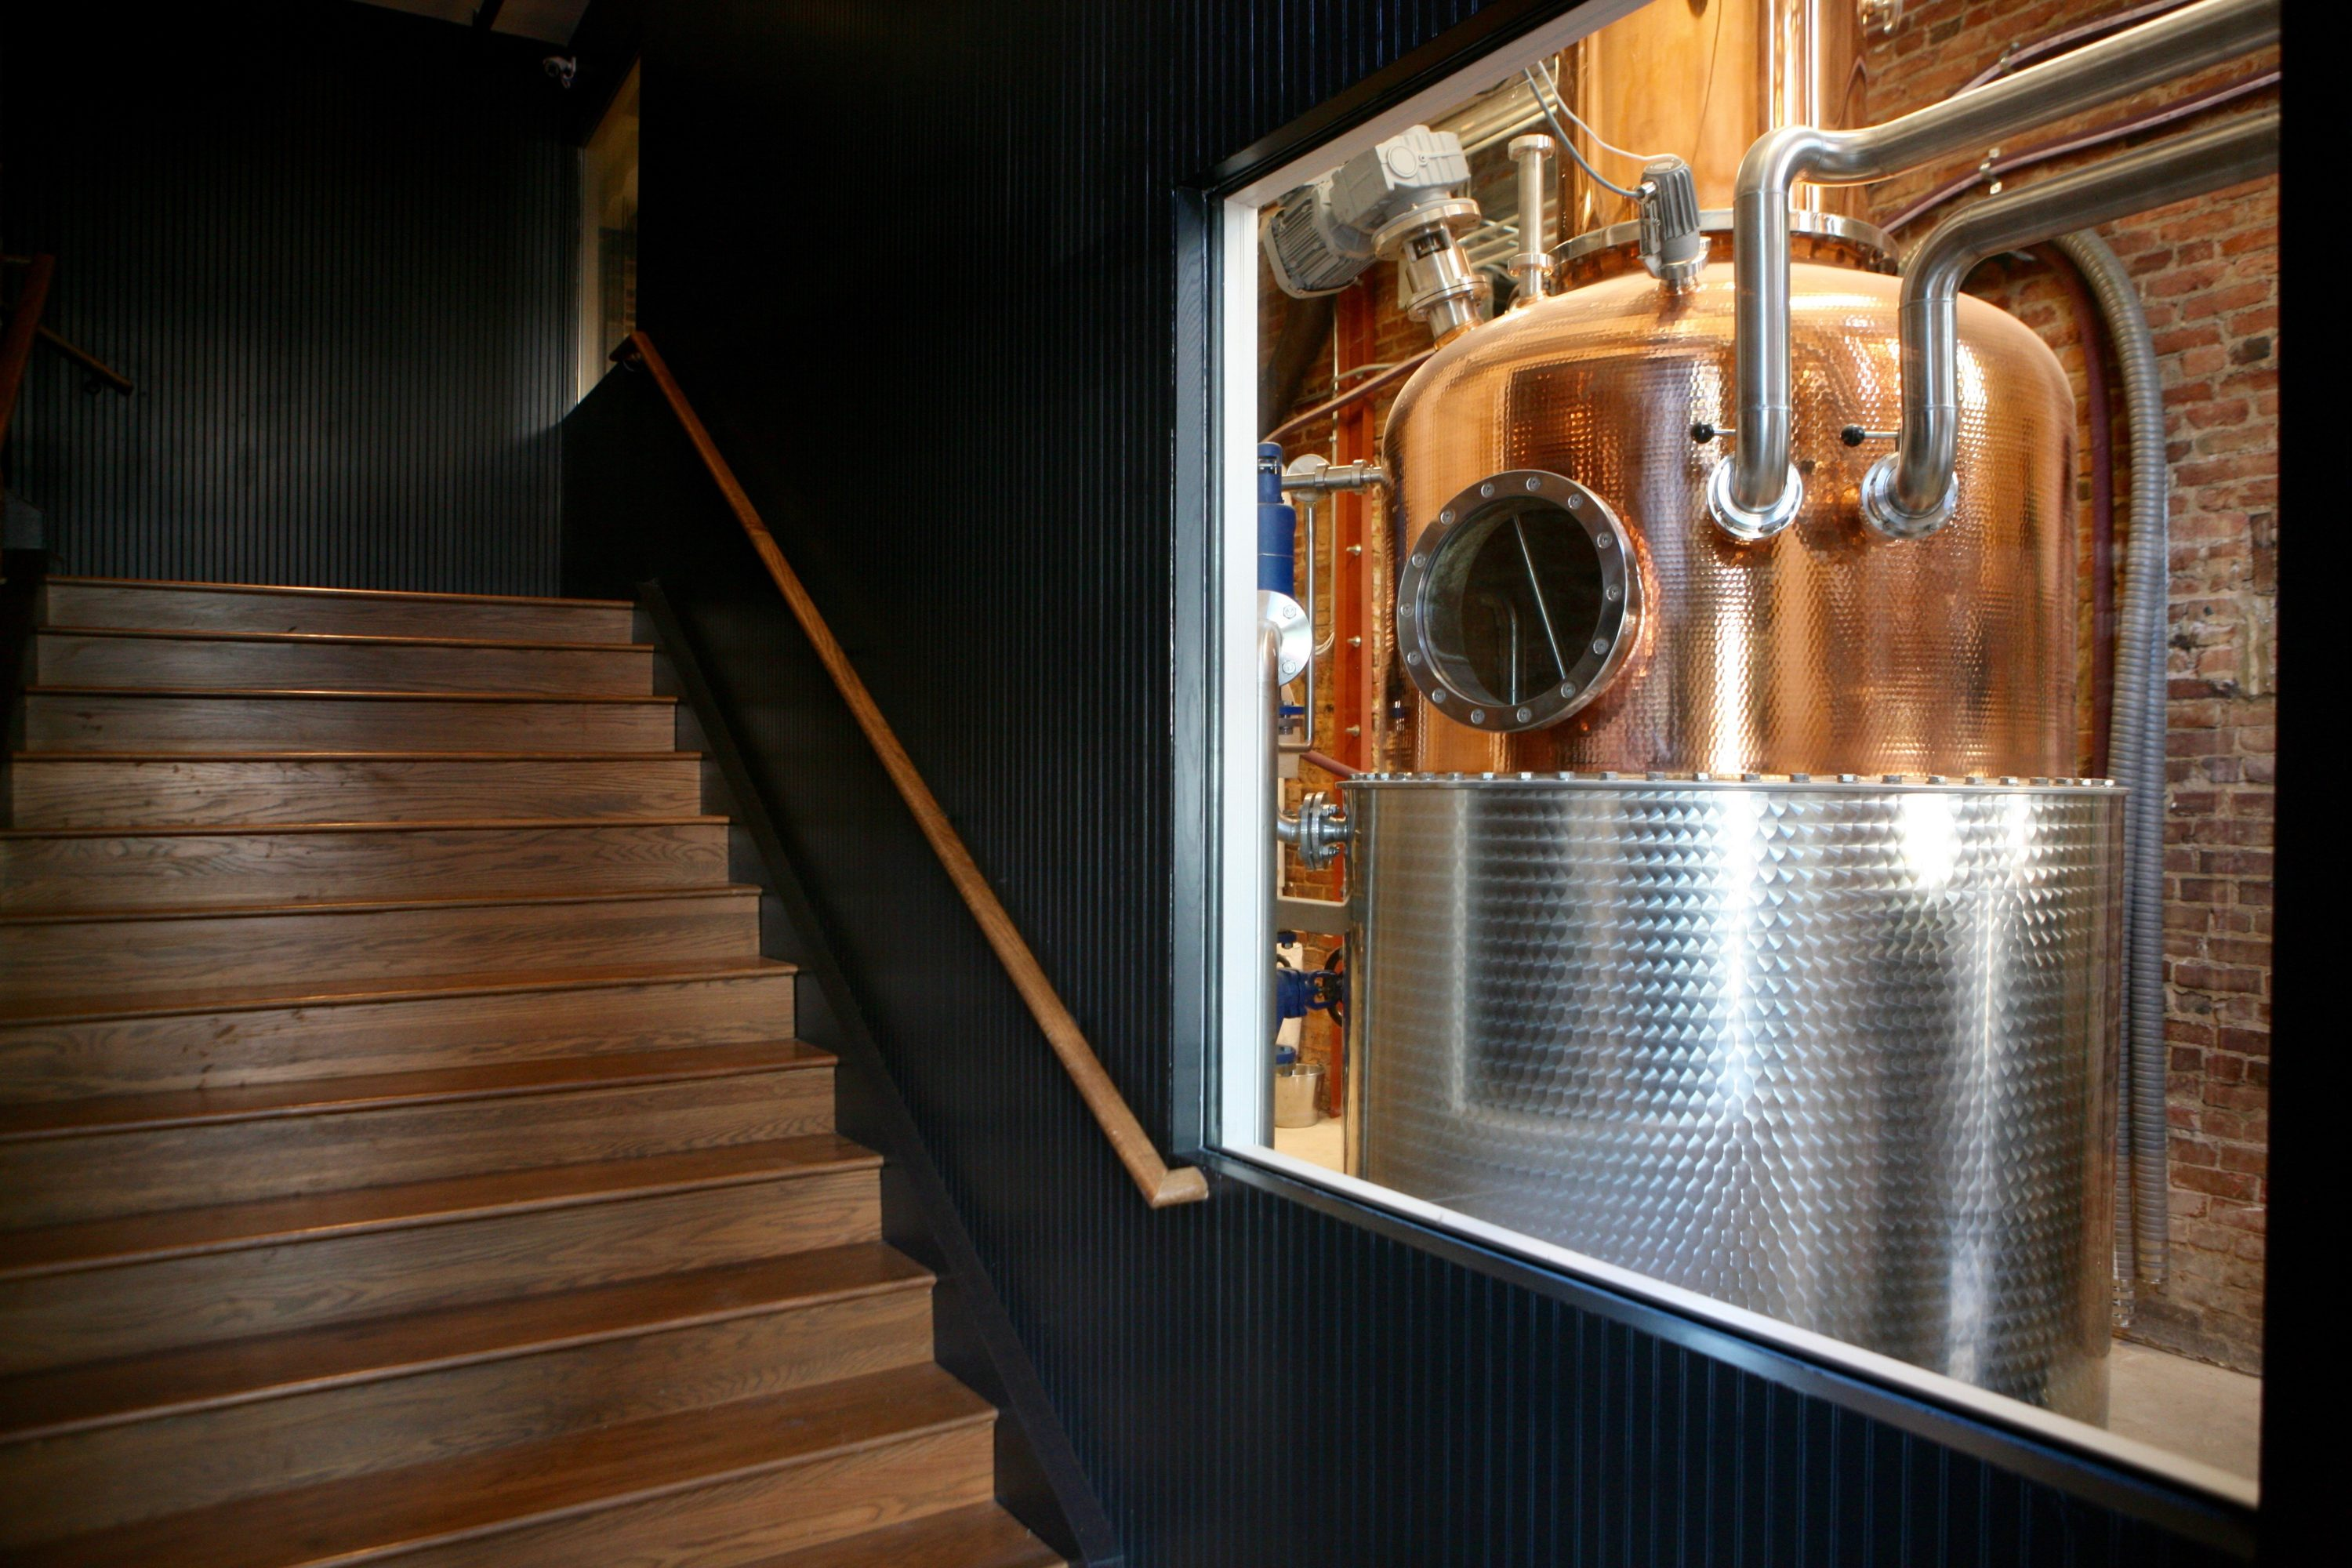 Guests glimpse the distilling equipment as soon as they walk in the door. Photography by Evy Mages.